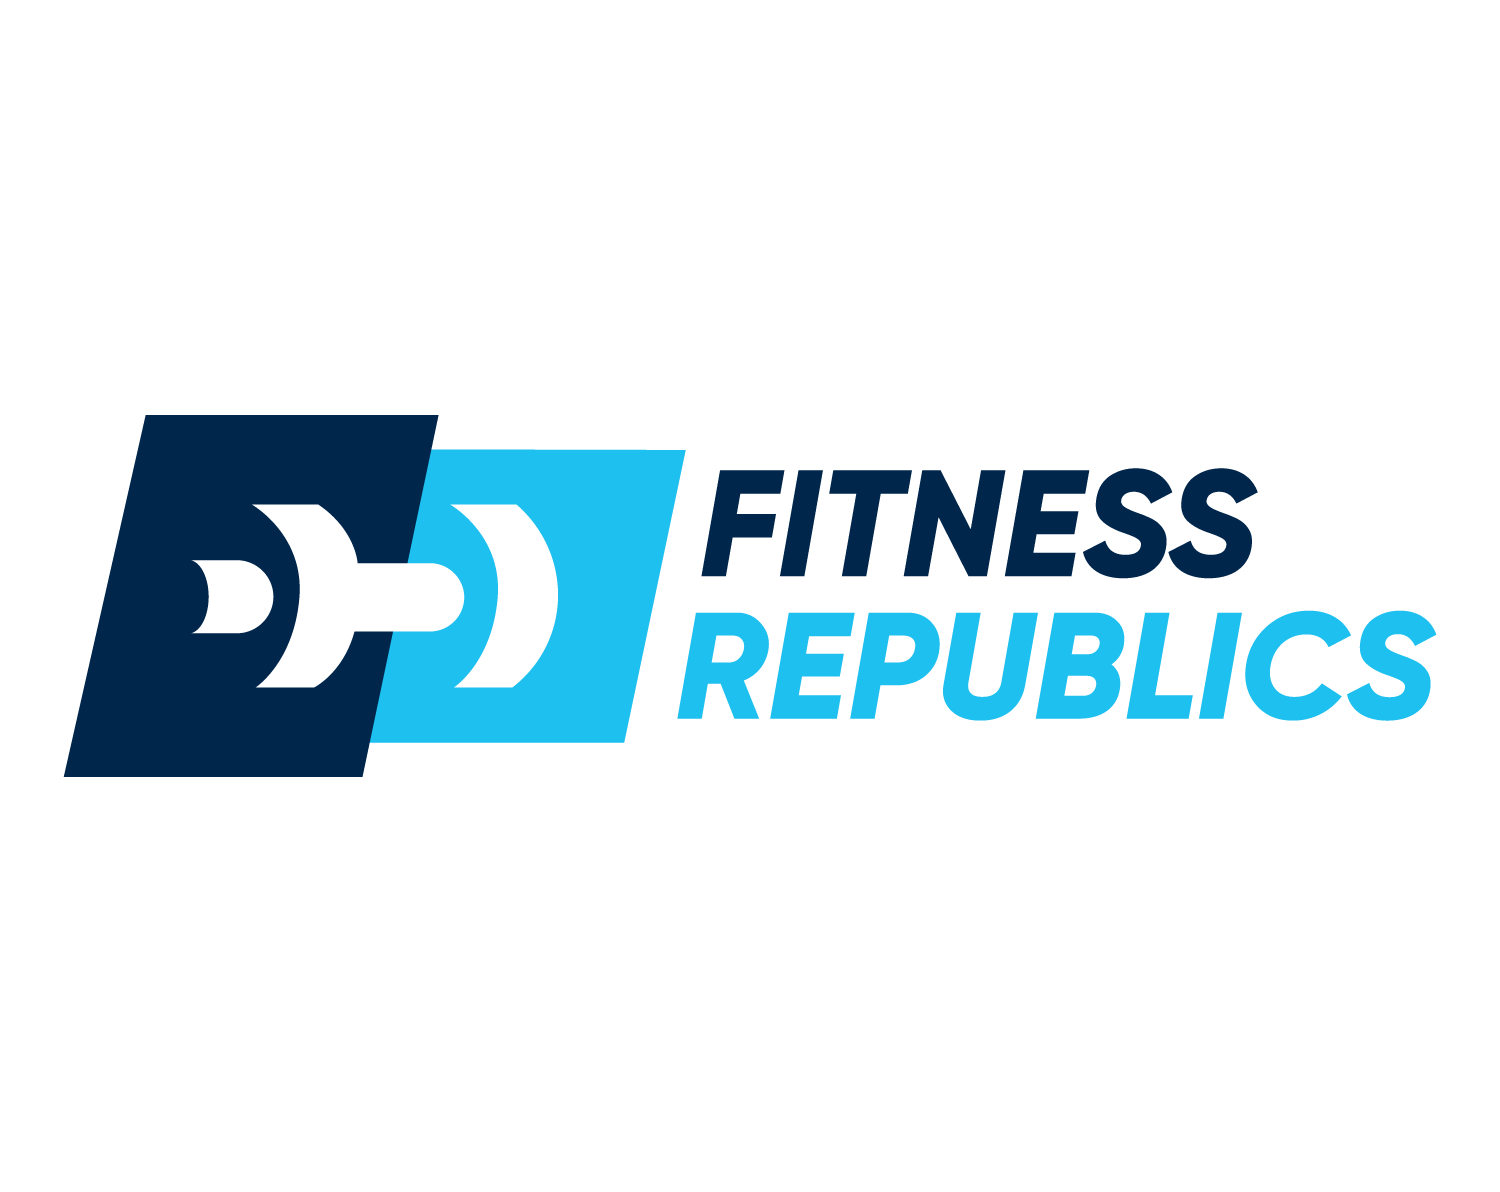 Fitness Republics